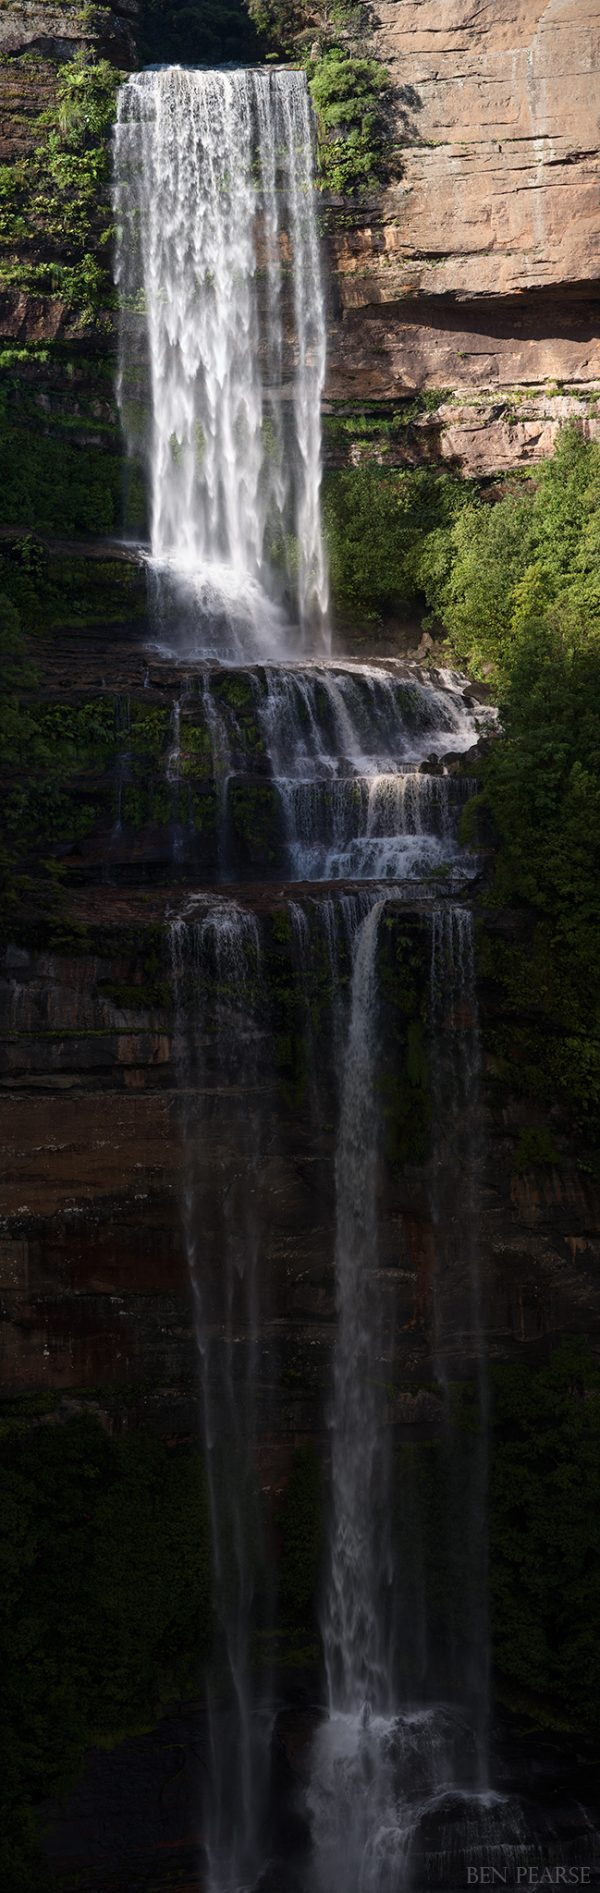 Katoomba Falls Full Scale - Ben Pearse Photography